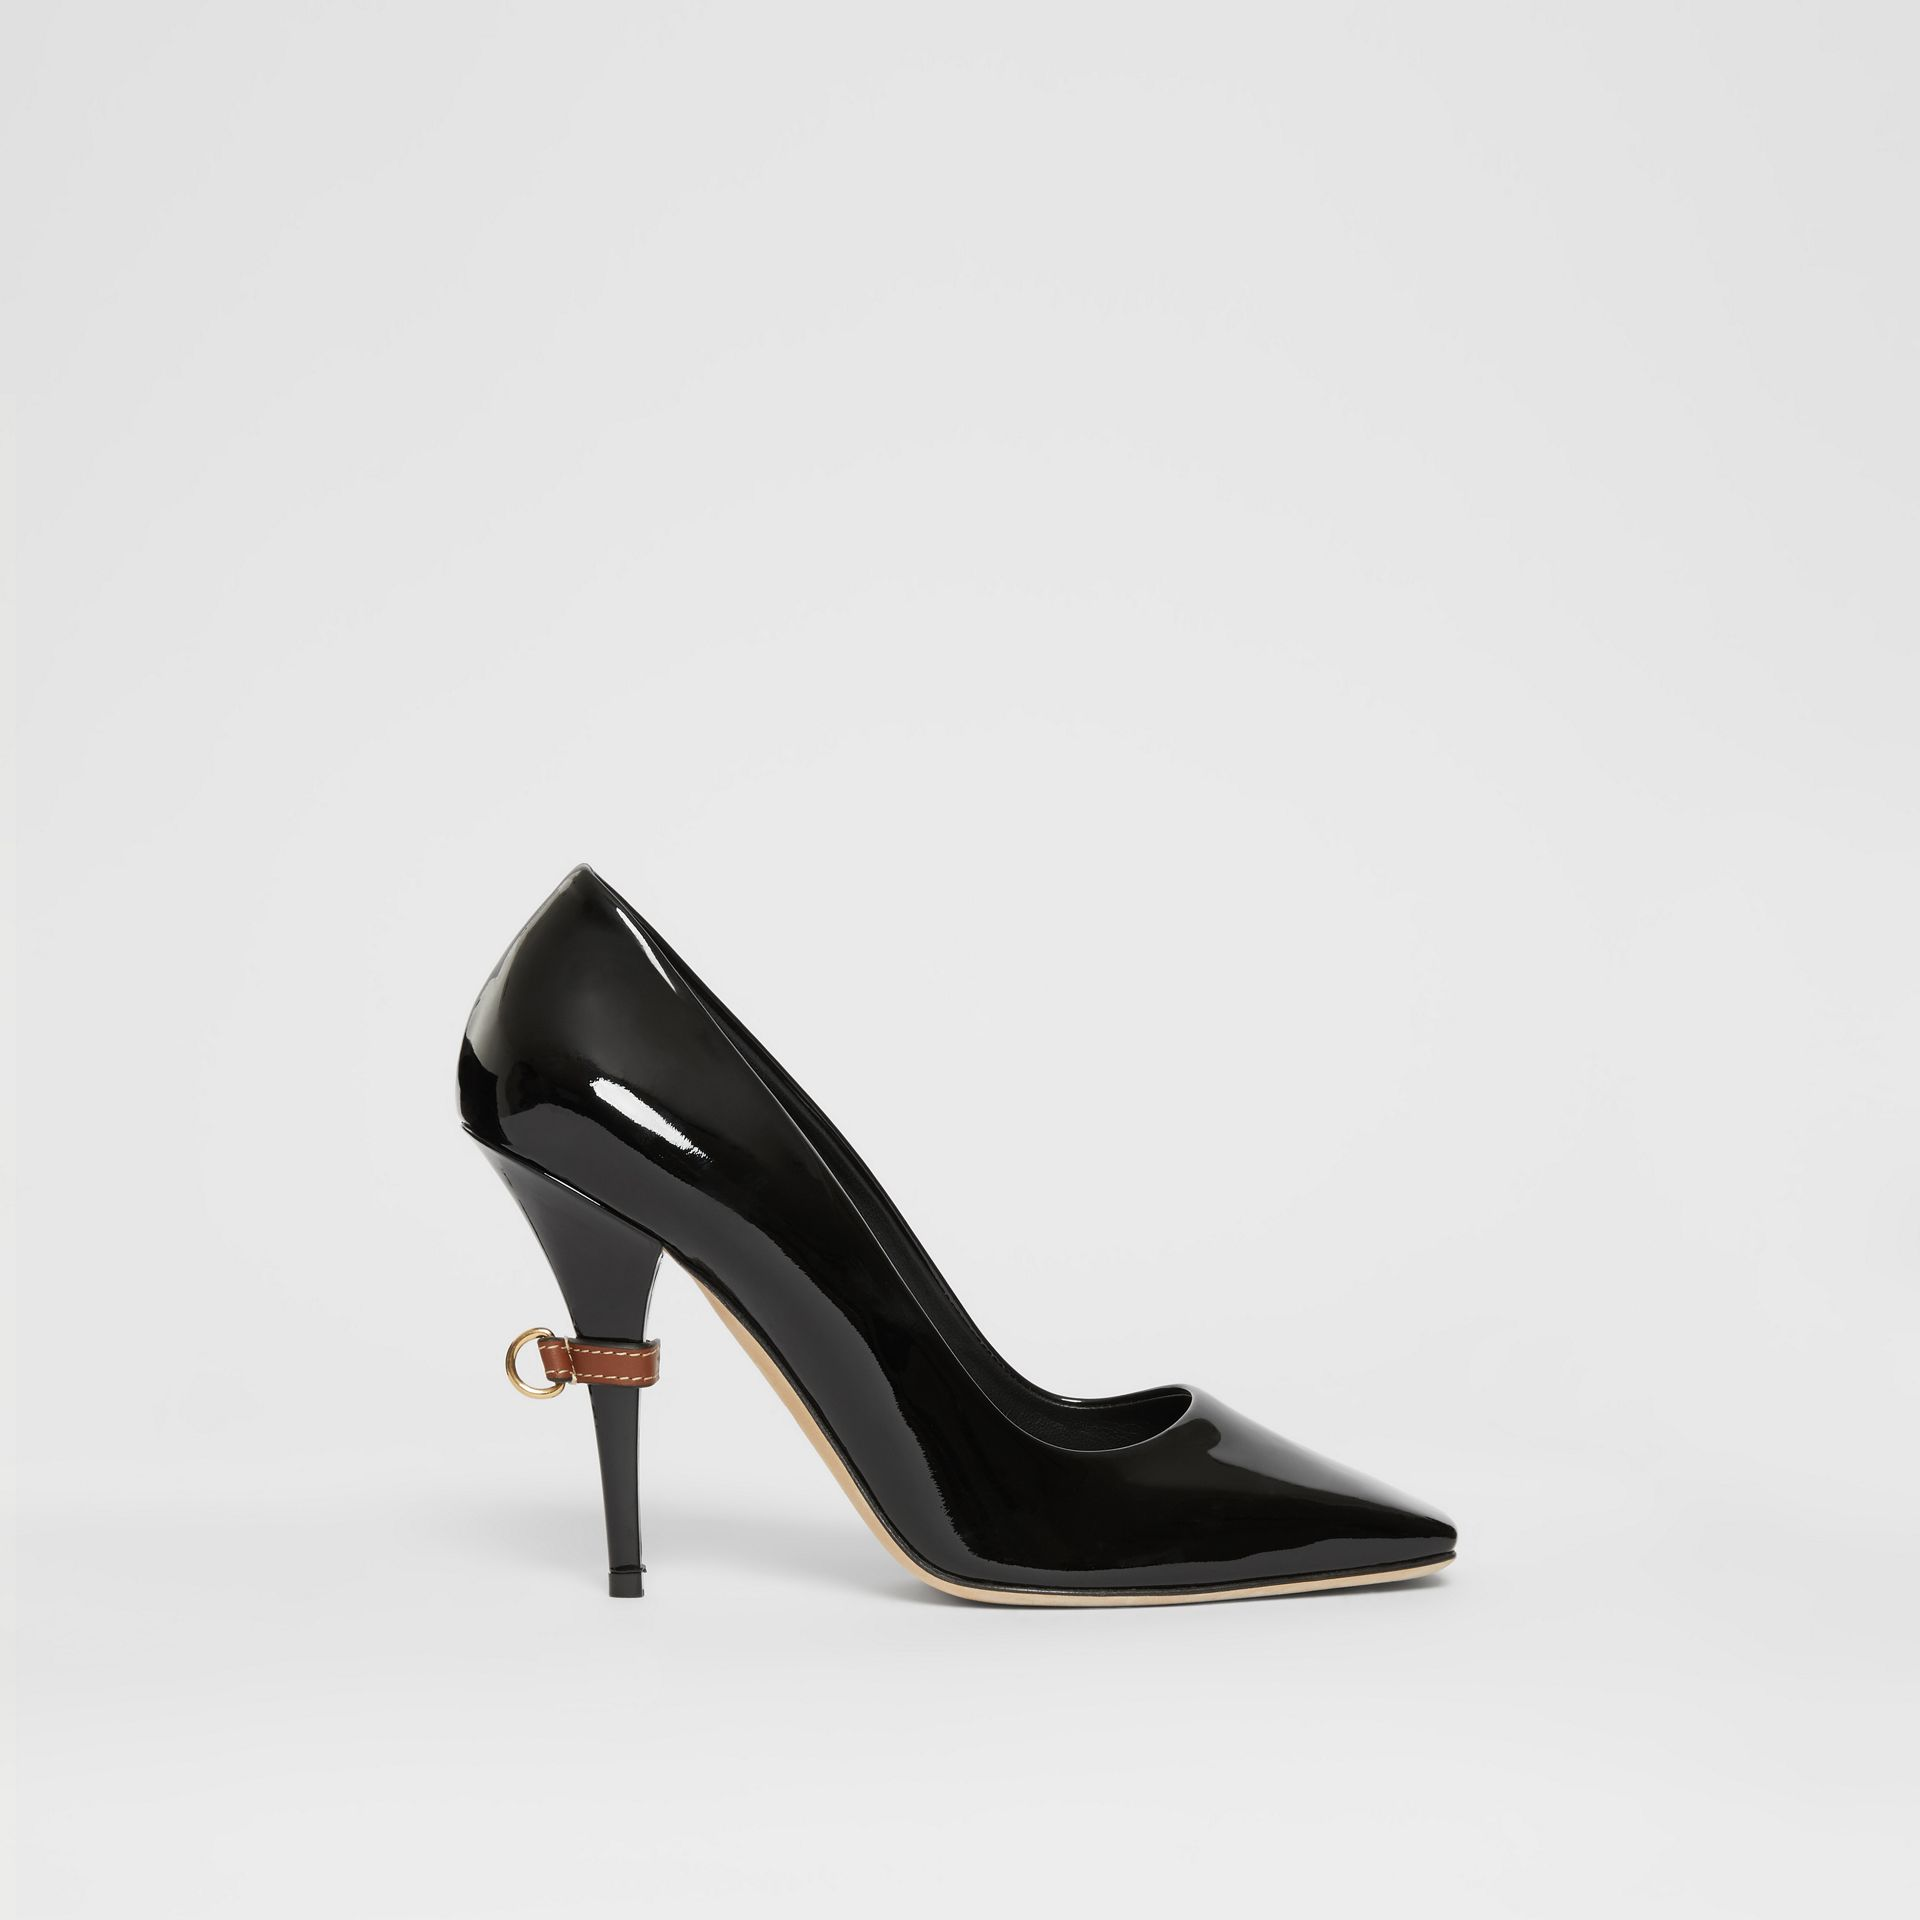 D-ring Detail Patent Leather Square-toe Pumps in Black - Women | Burberry United States - gallery image 5